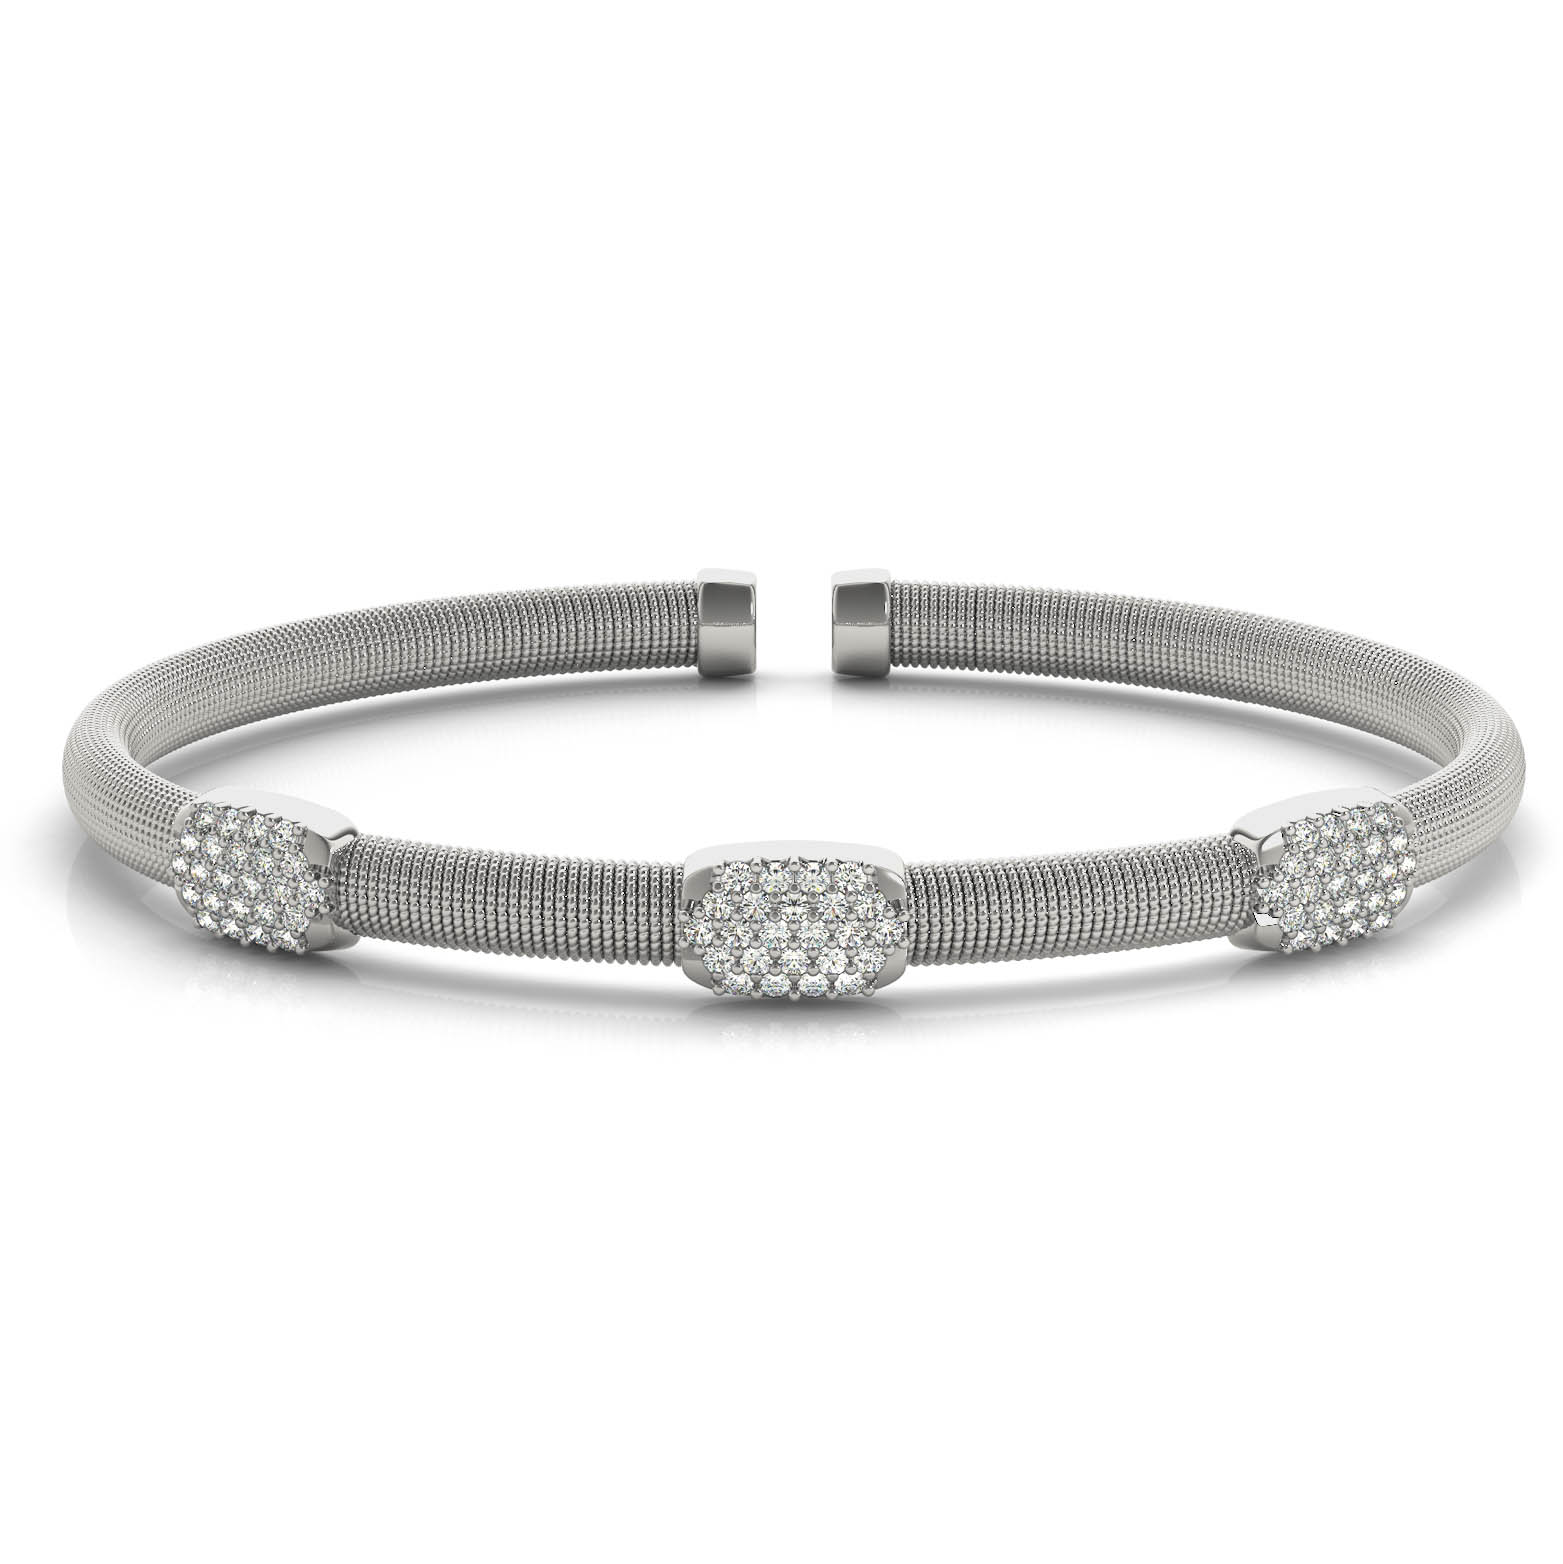 silver twist product diamond jewelry design bangles bracelet sterling watches cut bangle mondevio